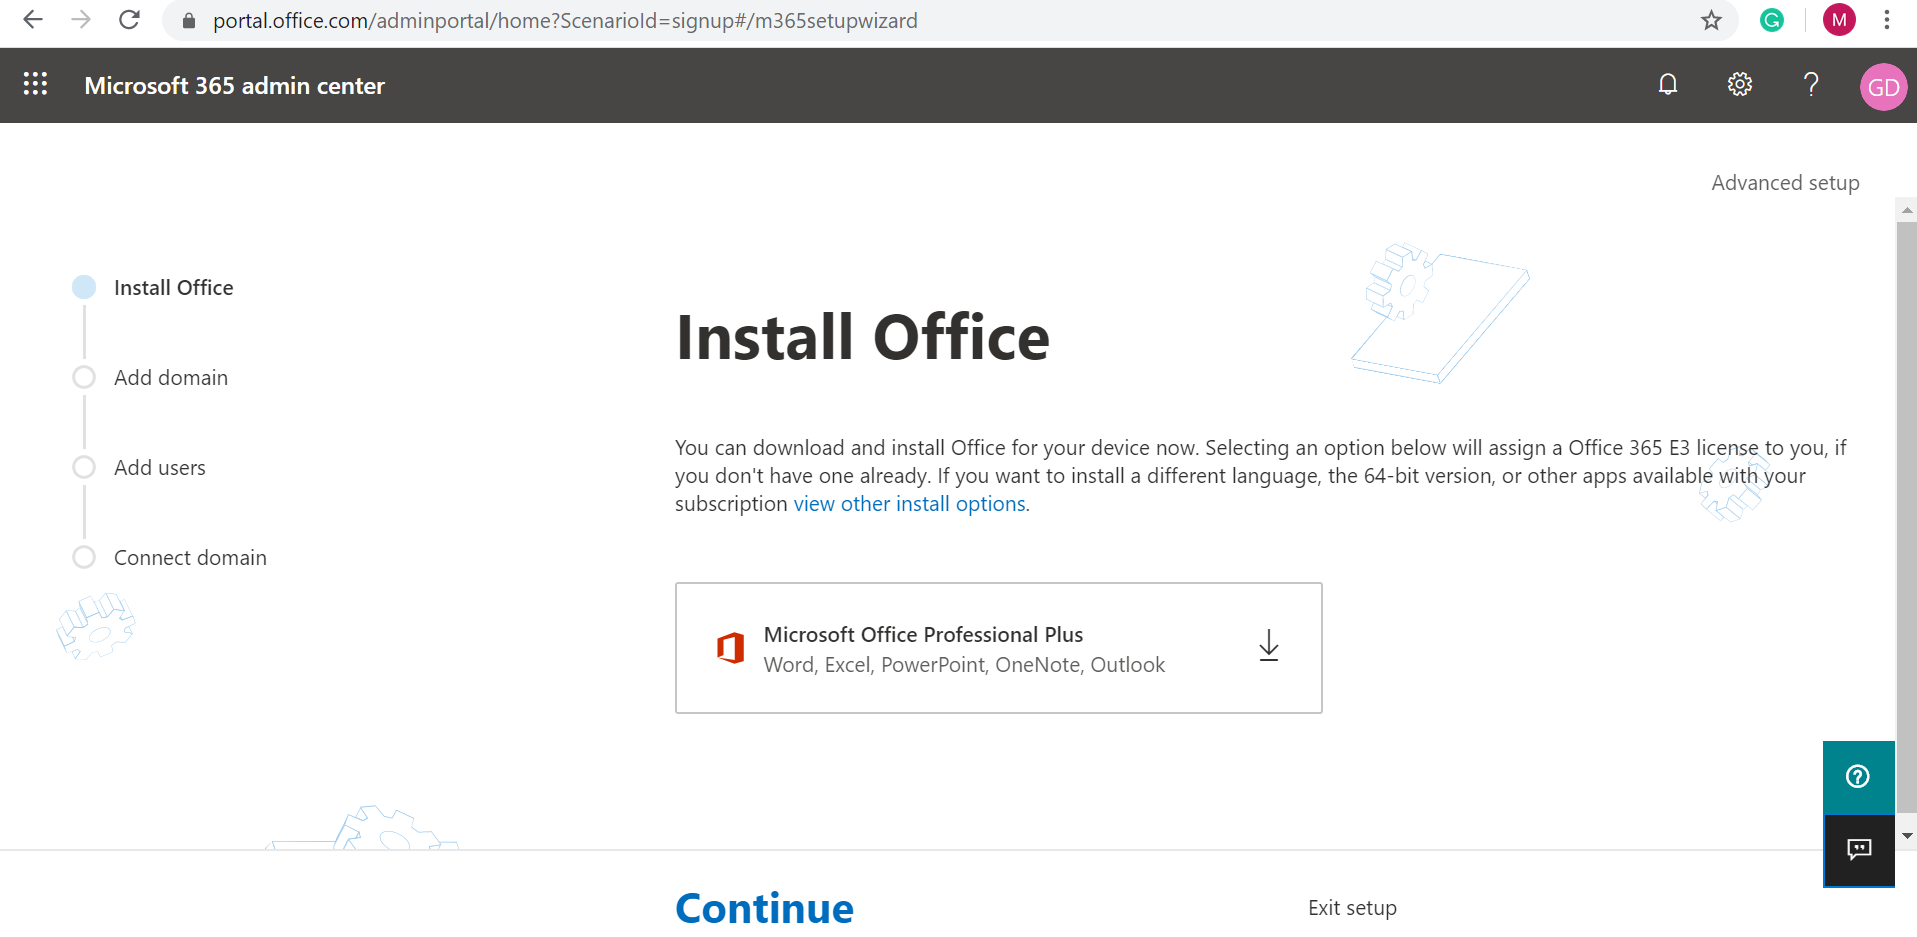 Office 365 E3 Trial - Microsoft 365 admin center home page